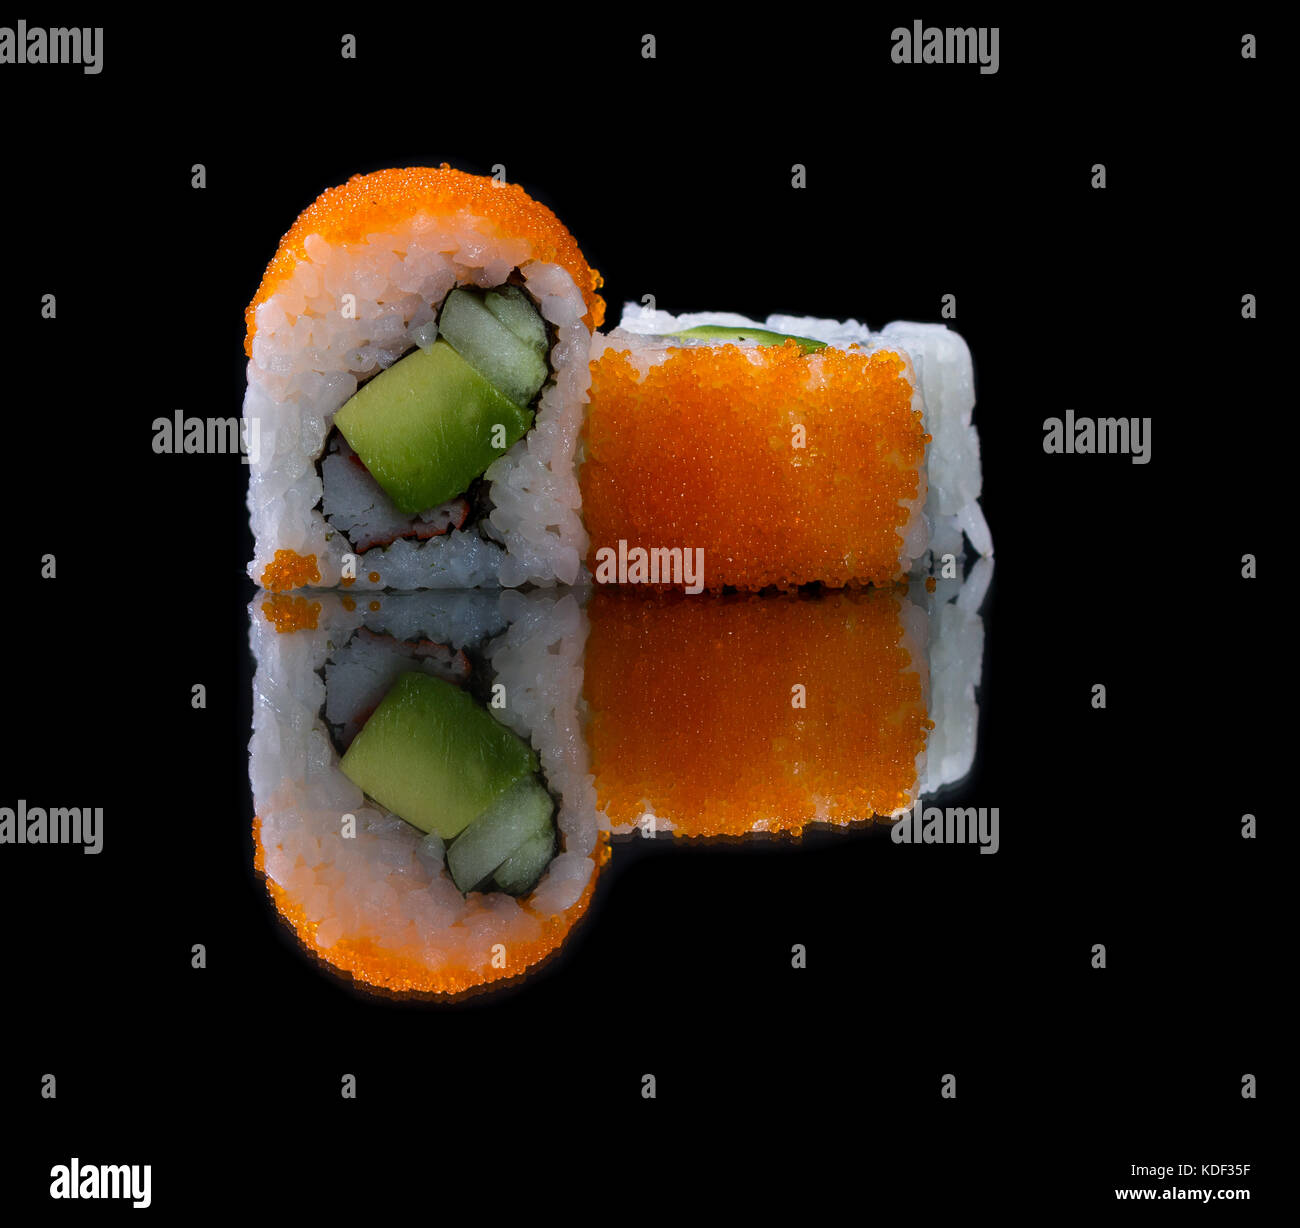 close up of a piece of sushi with glowing and colorful fish eggs on top - Stock Image